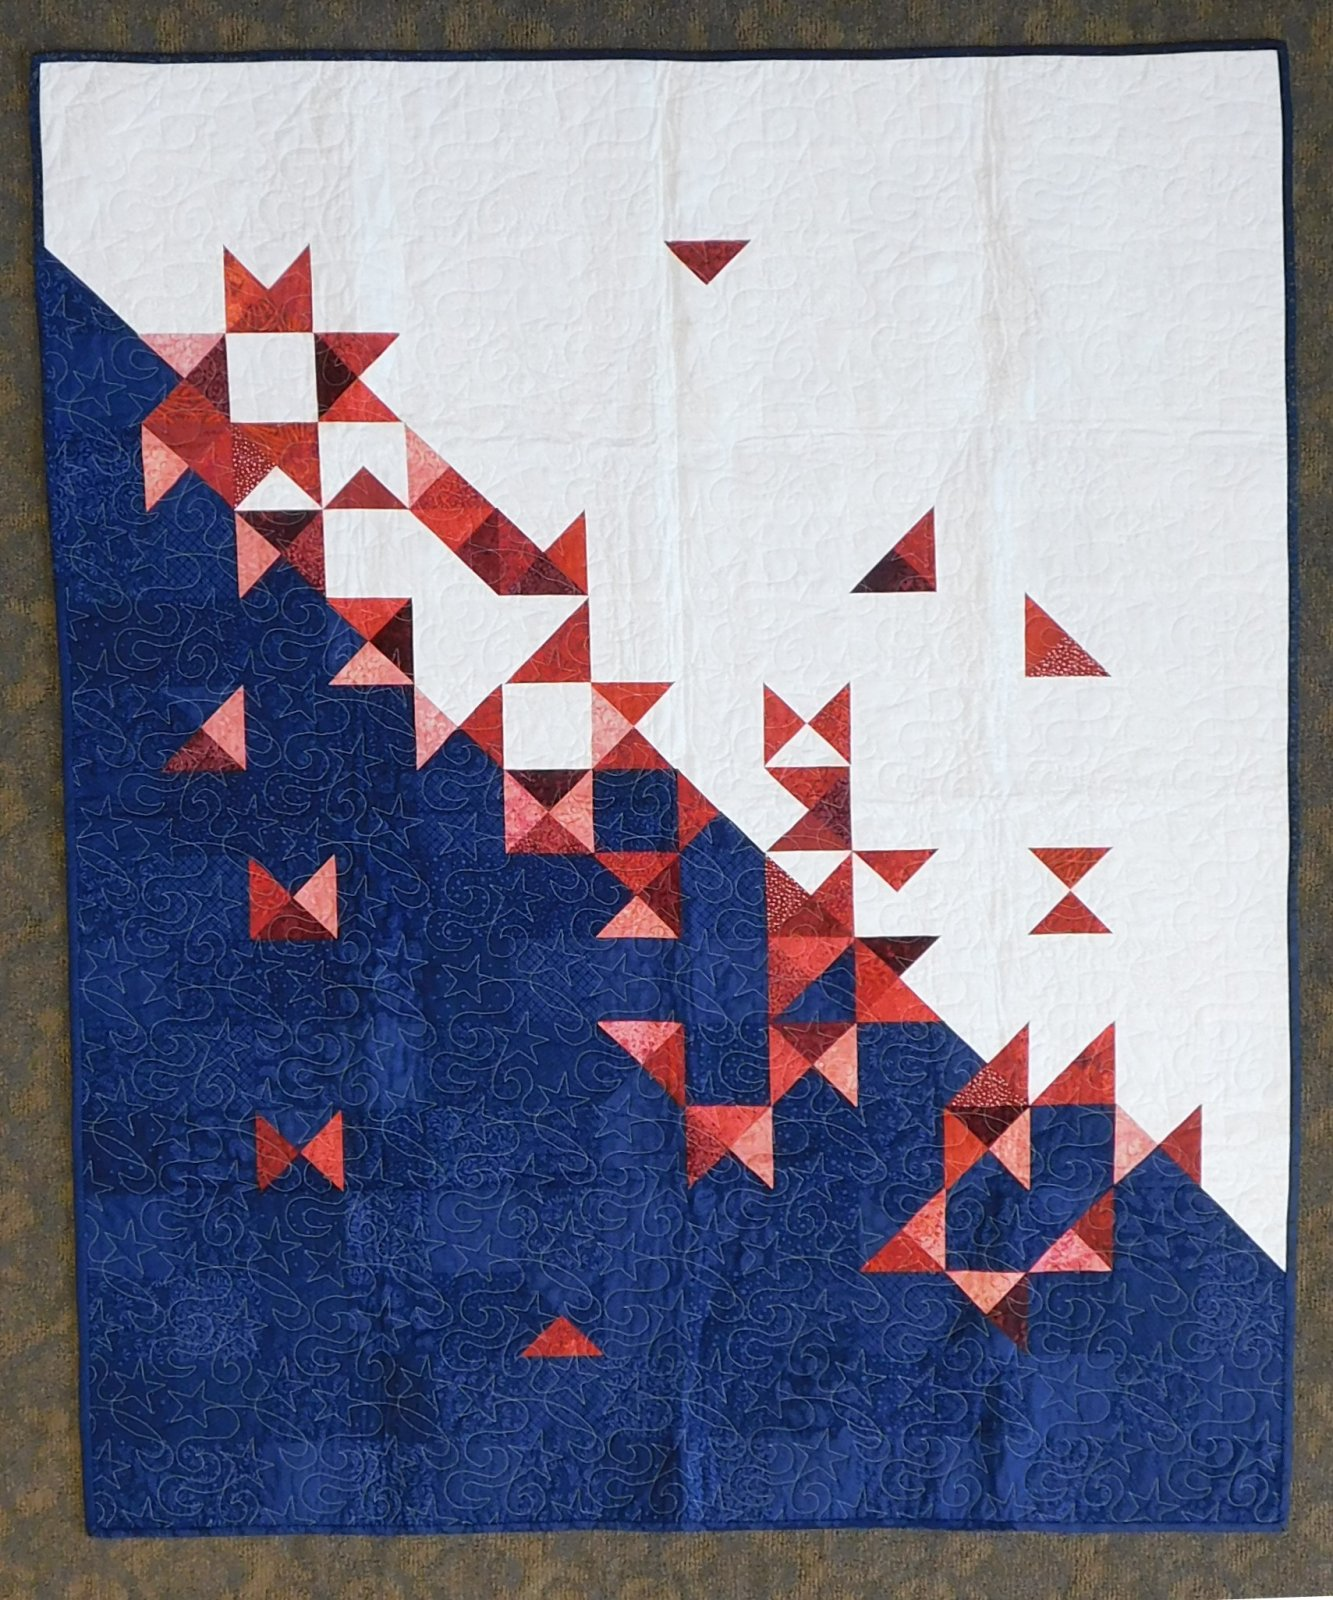 Stars on the Loose Finished Quilt 51 x 62